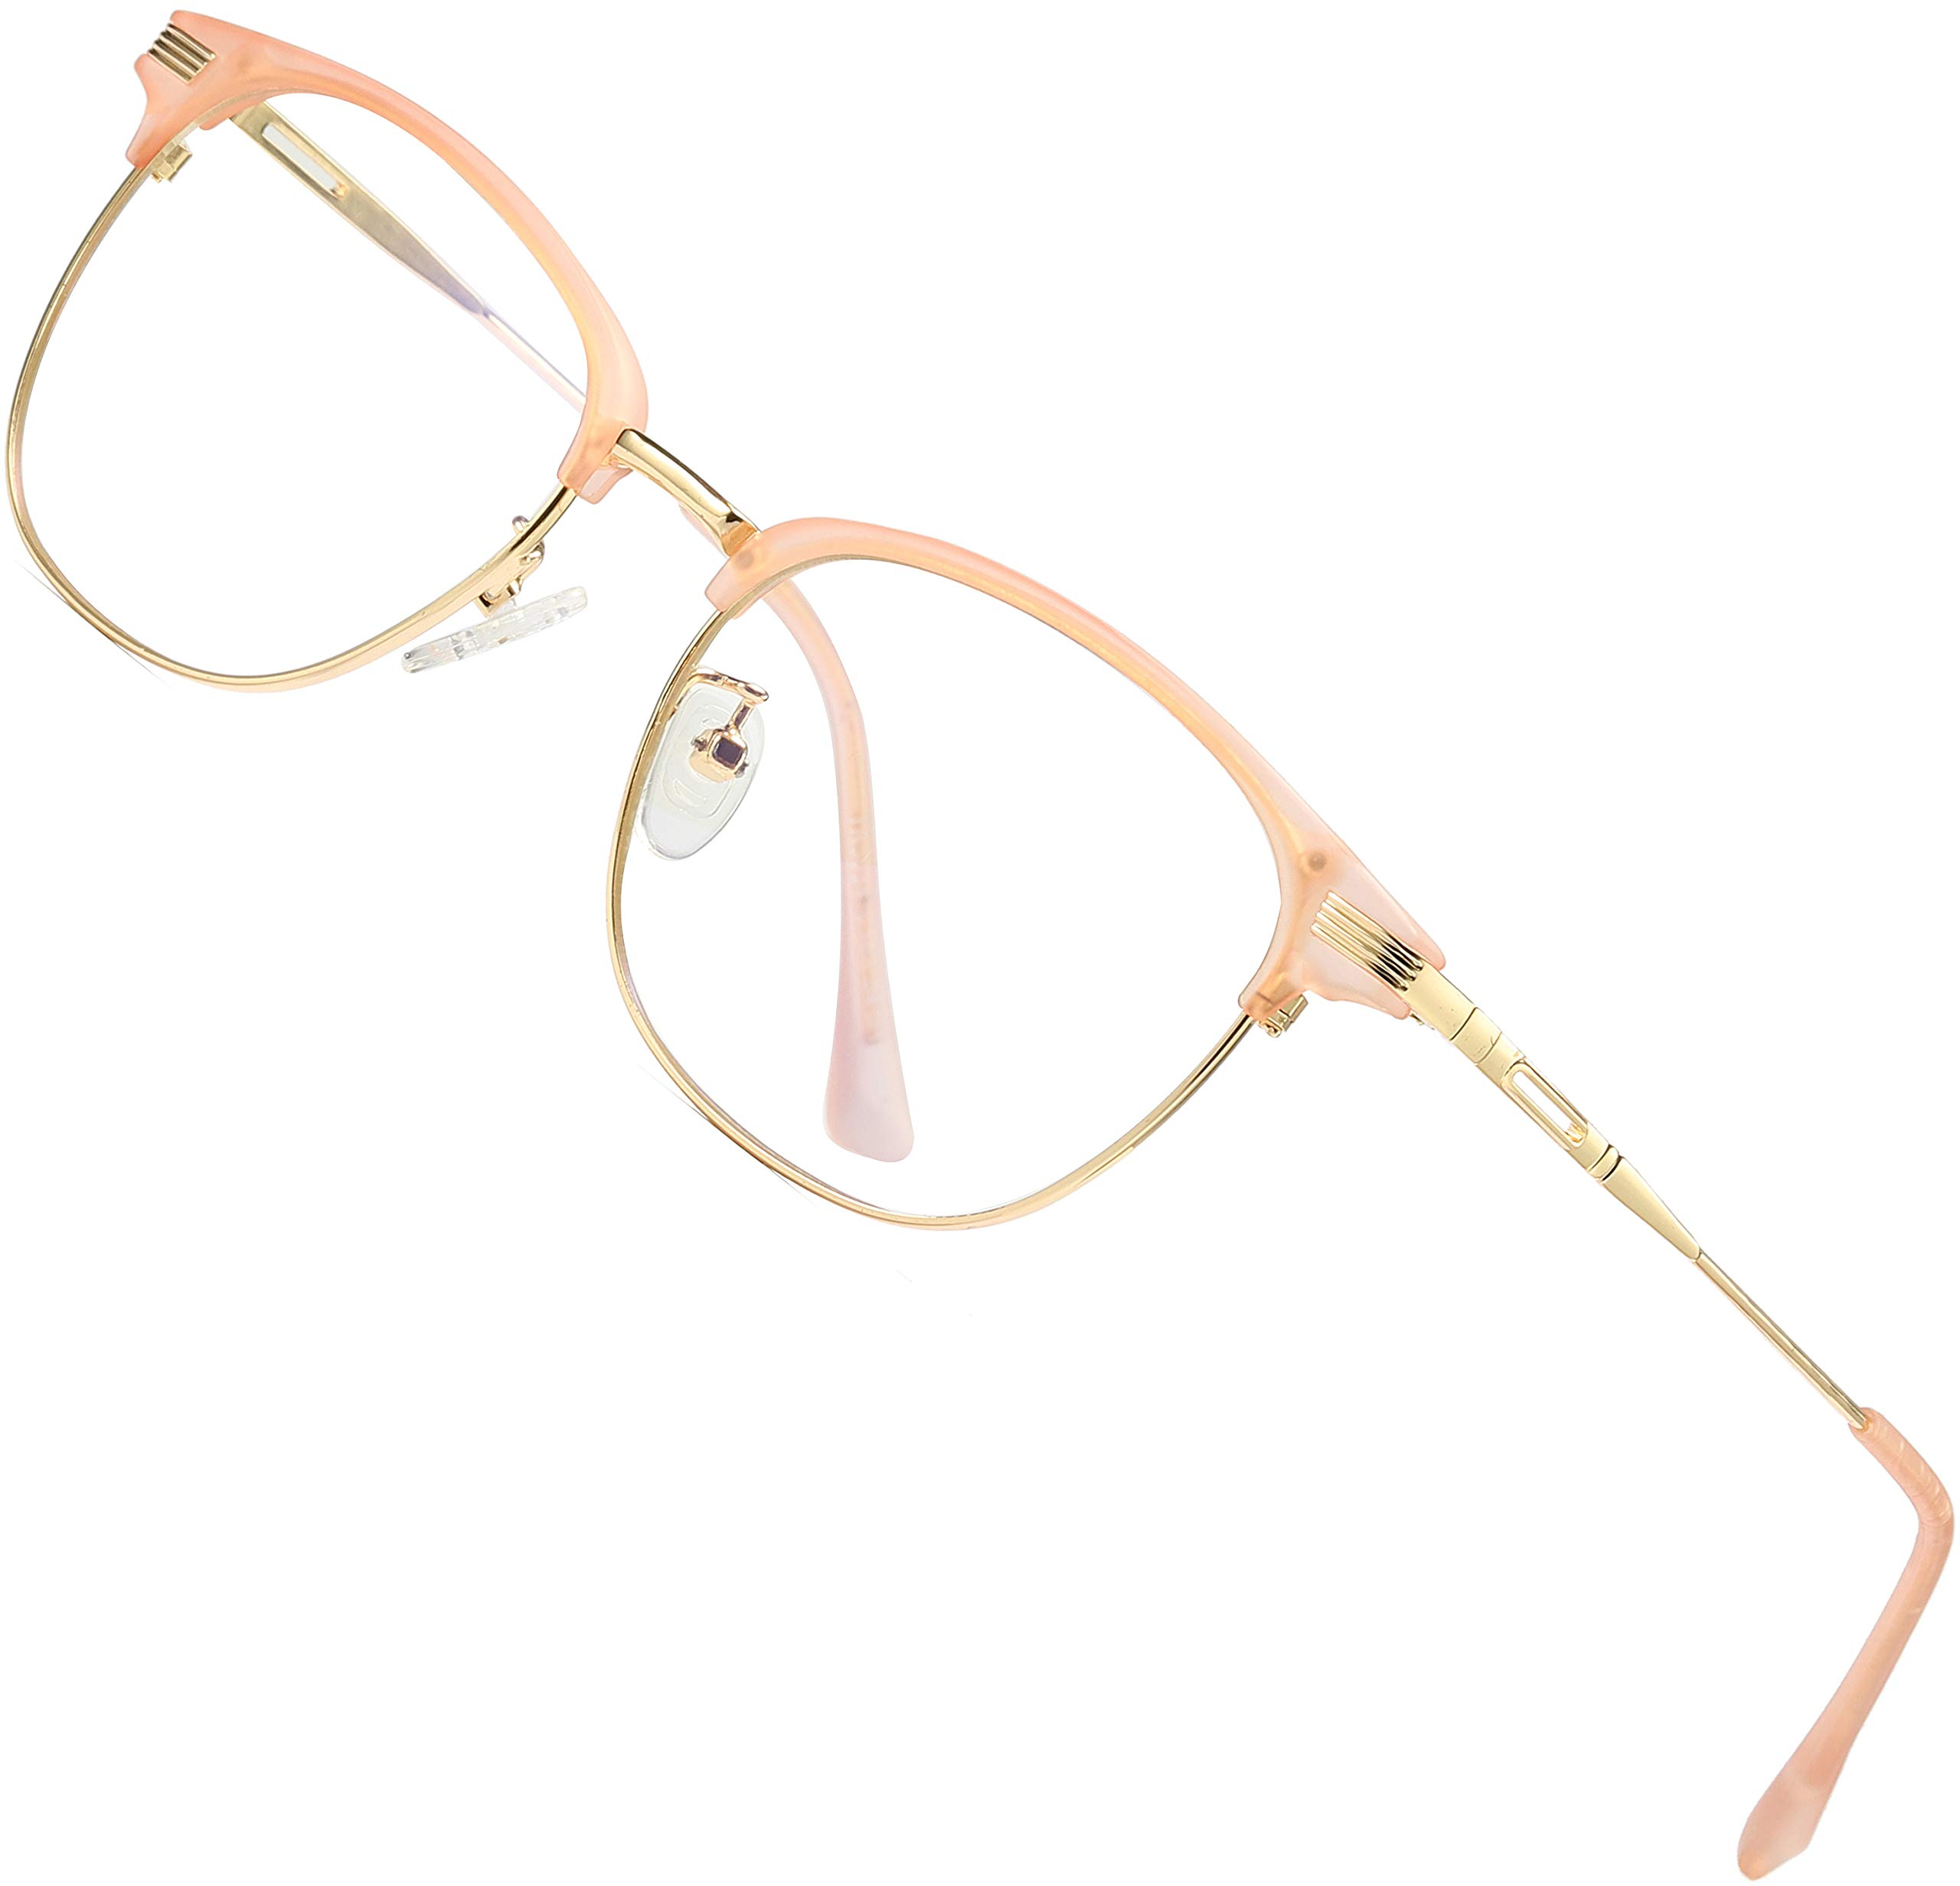 ATTCL Unisex Blue Light Blocking Glasses Eyeglasses Frame Anti Blue Ray Computer Game Glasses 5054-Pink by ATTCL